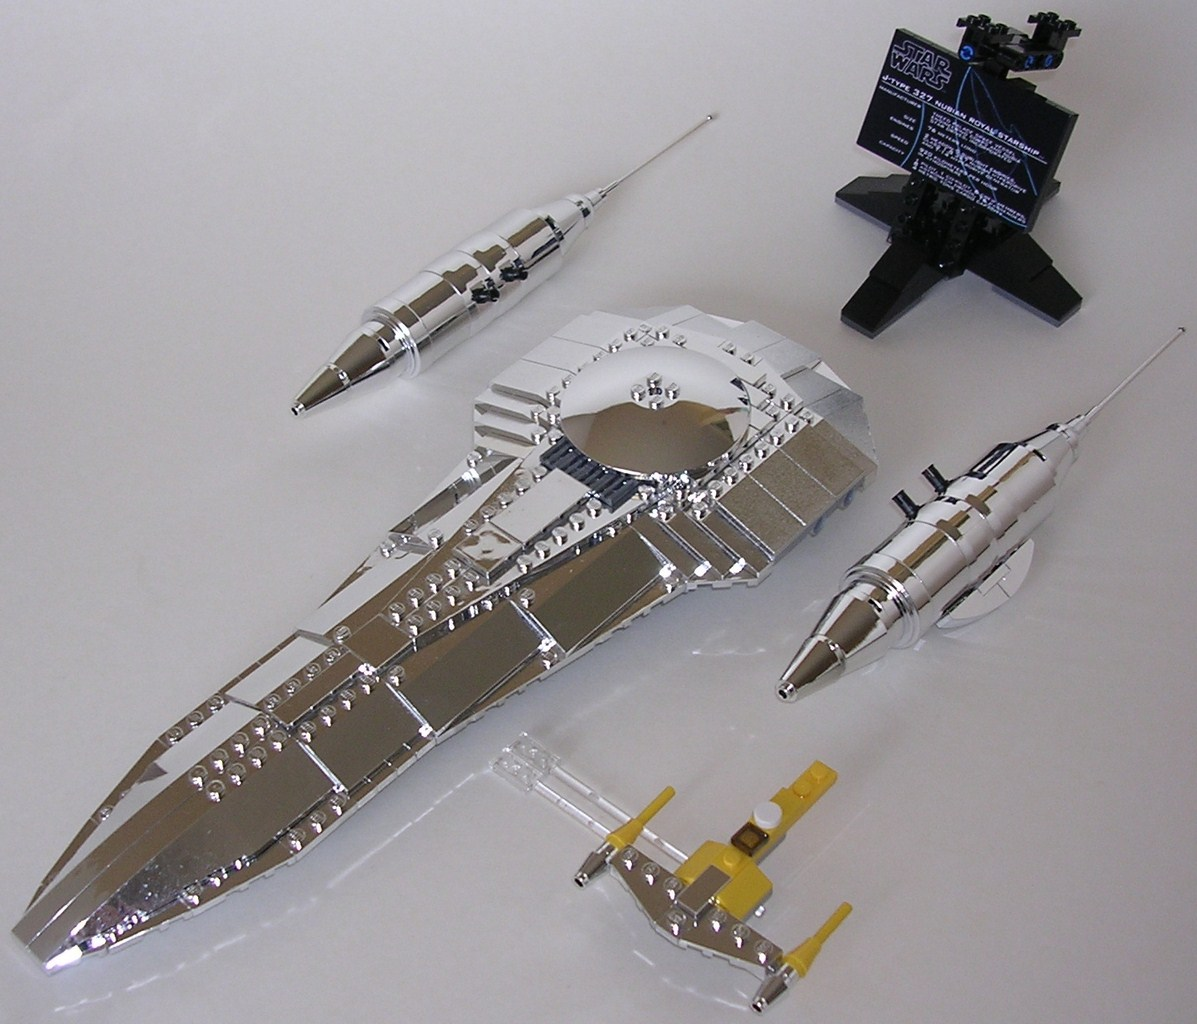 Review lego star wars st11 naboo royal starship - Vaisseau star wars anakin ...